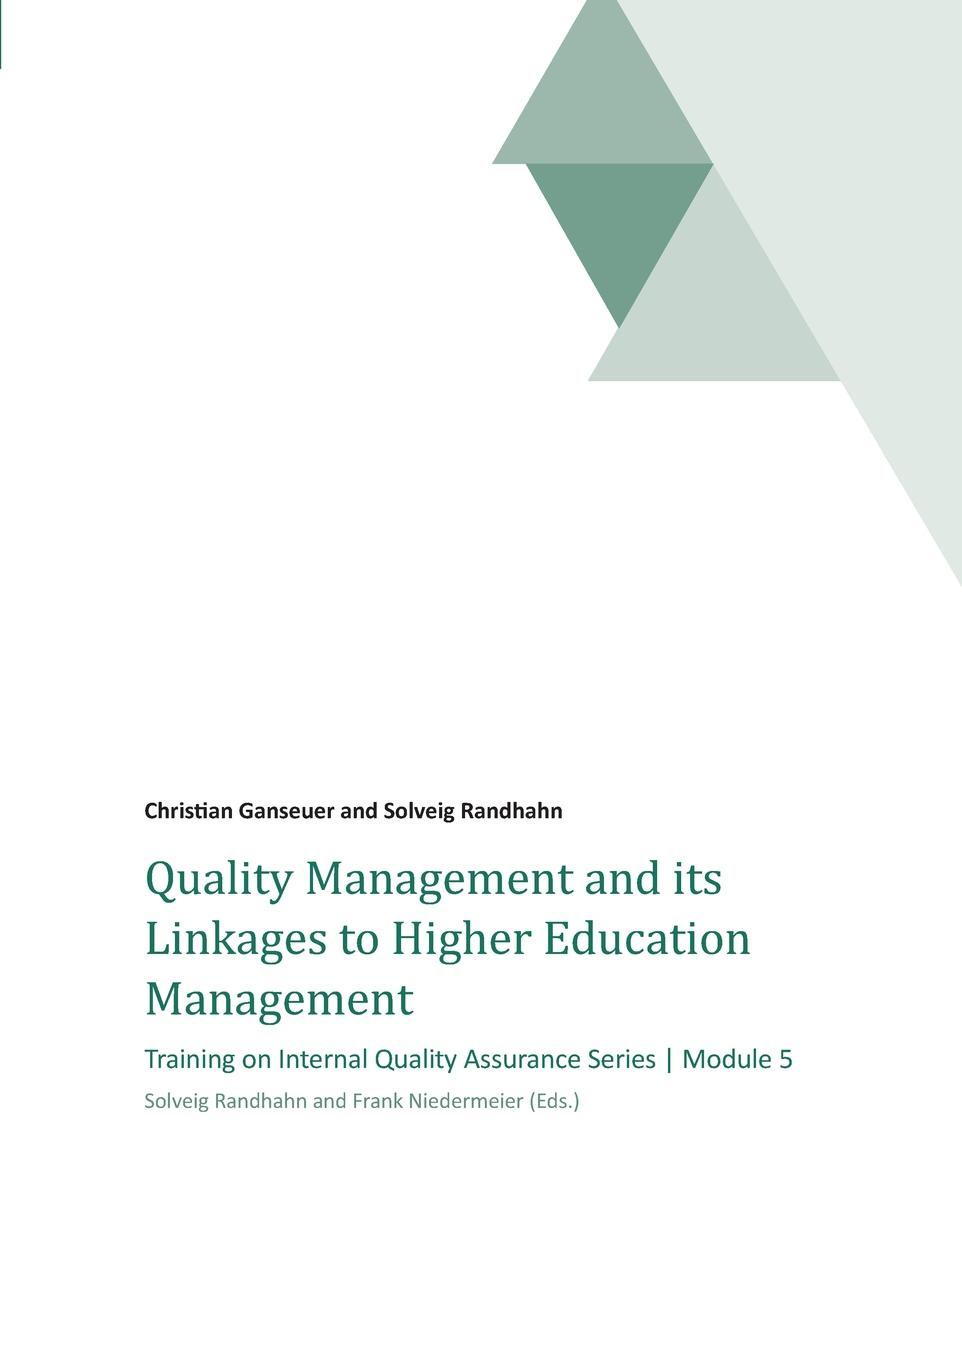 Dr. Solveig Randhahn Quality Management and its Linkages to Higher Education Management цена